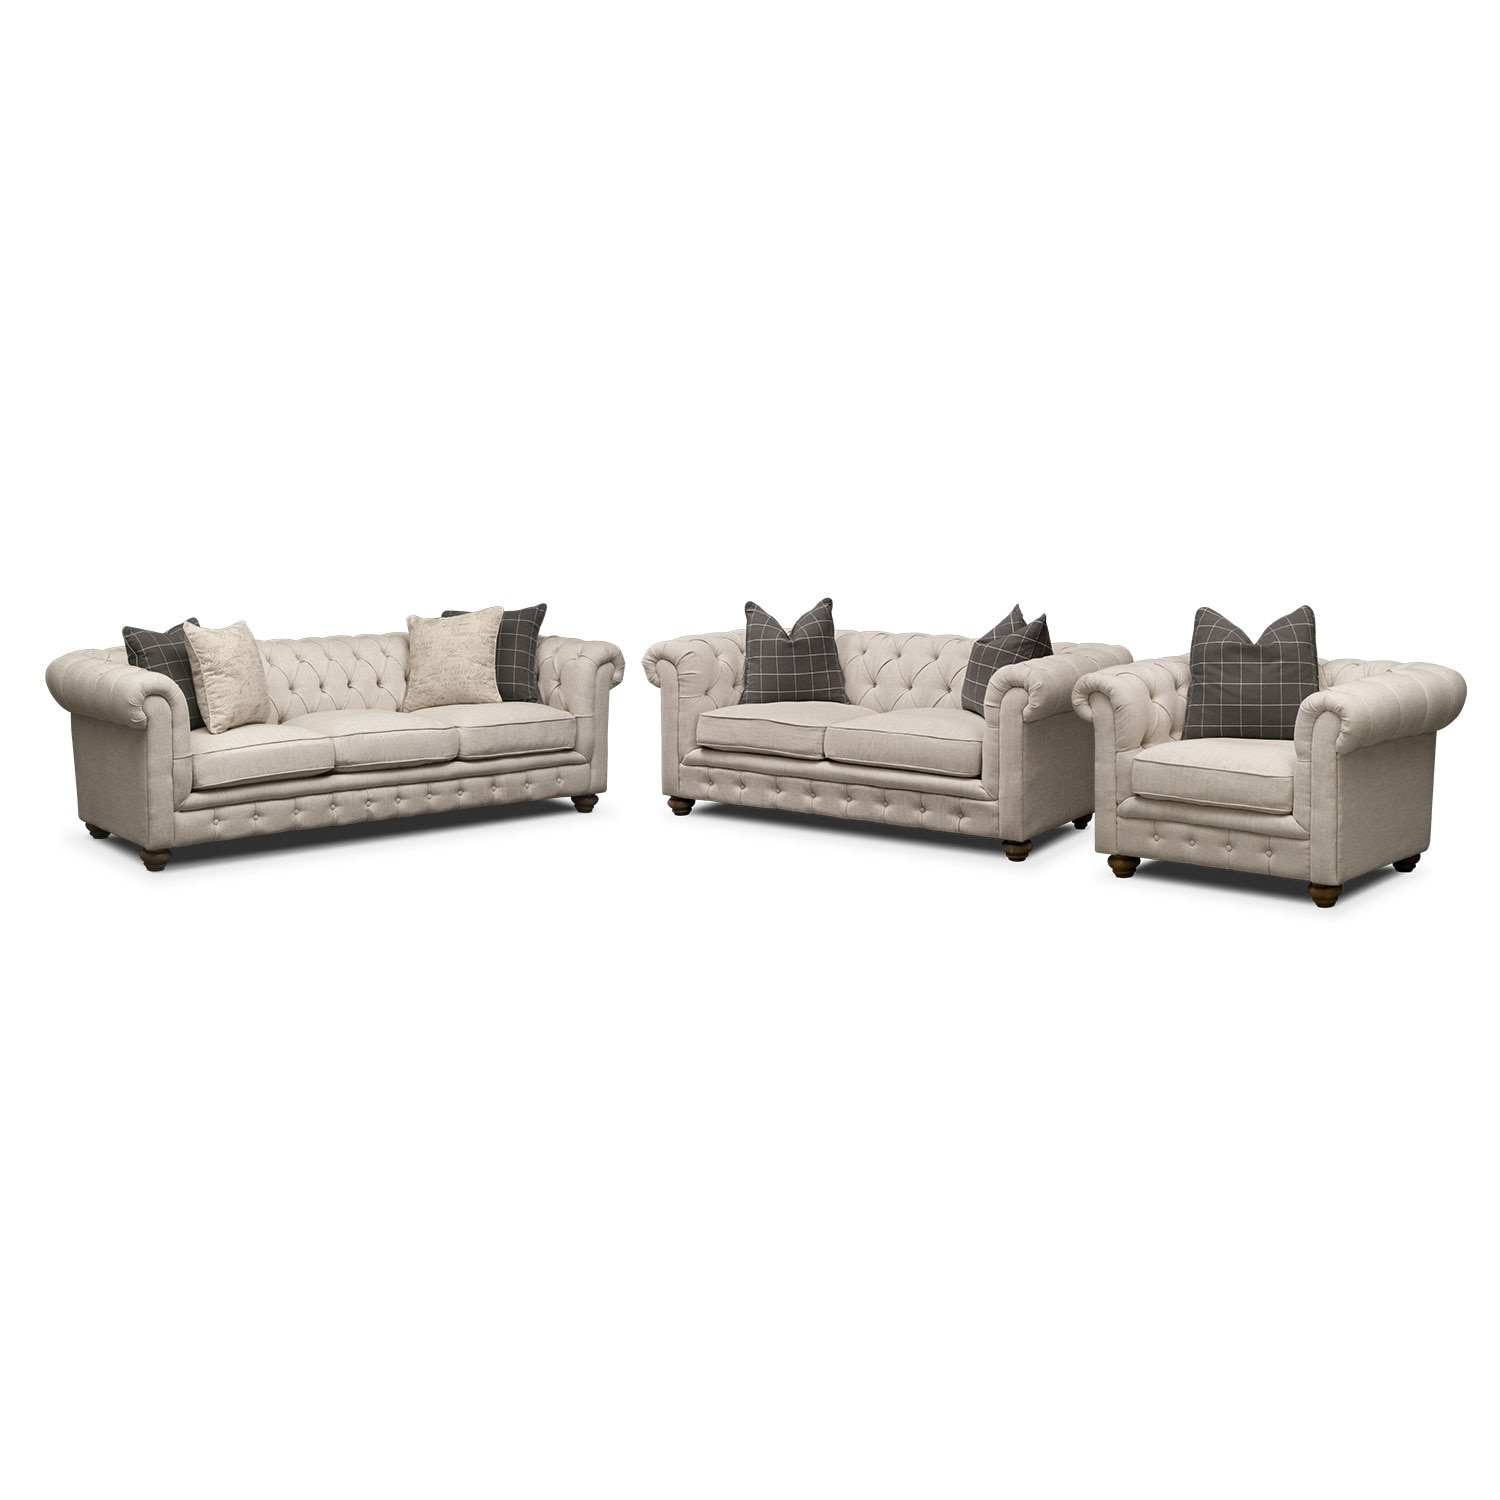 Madeline Sofa Apartment Sofa And Chair Set Beige American Signature Furn